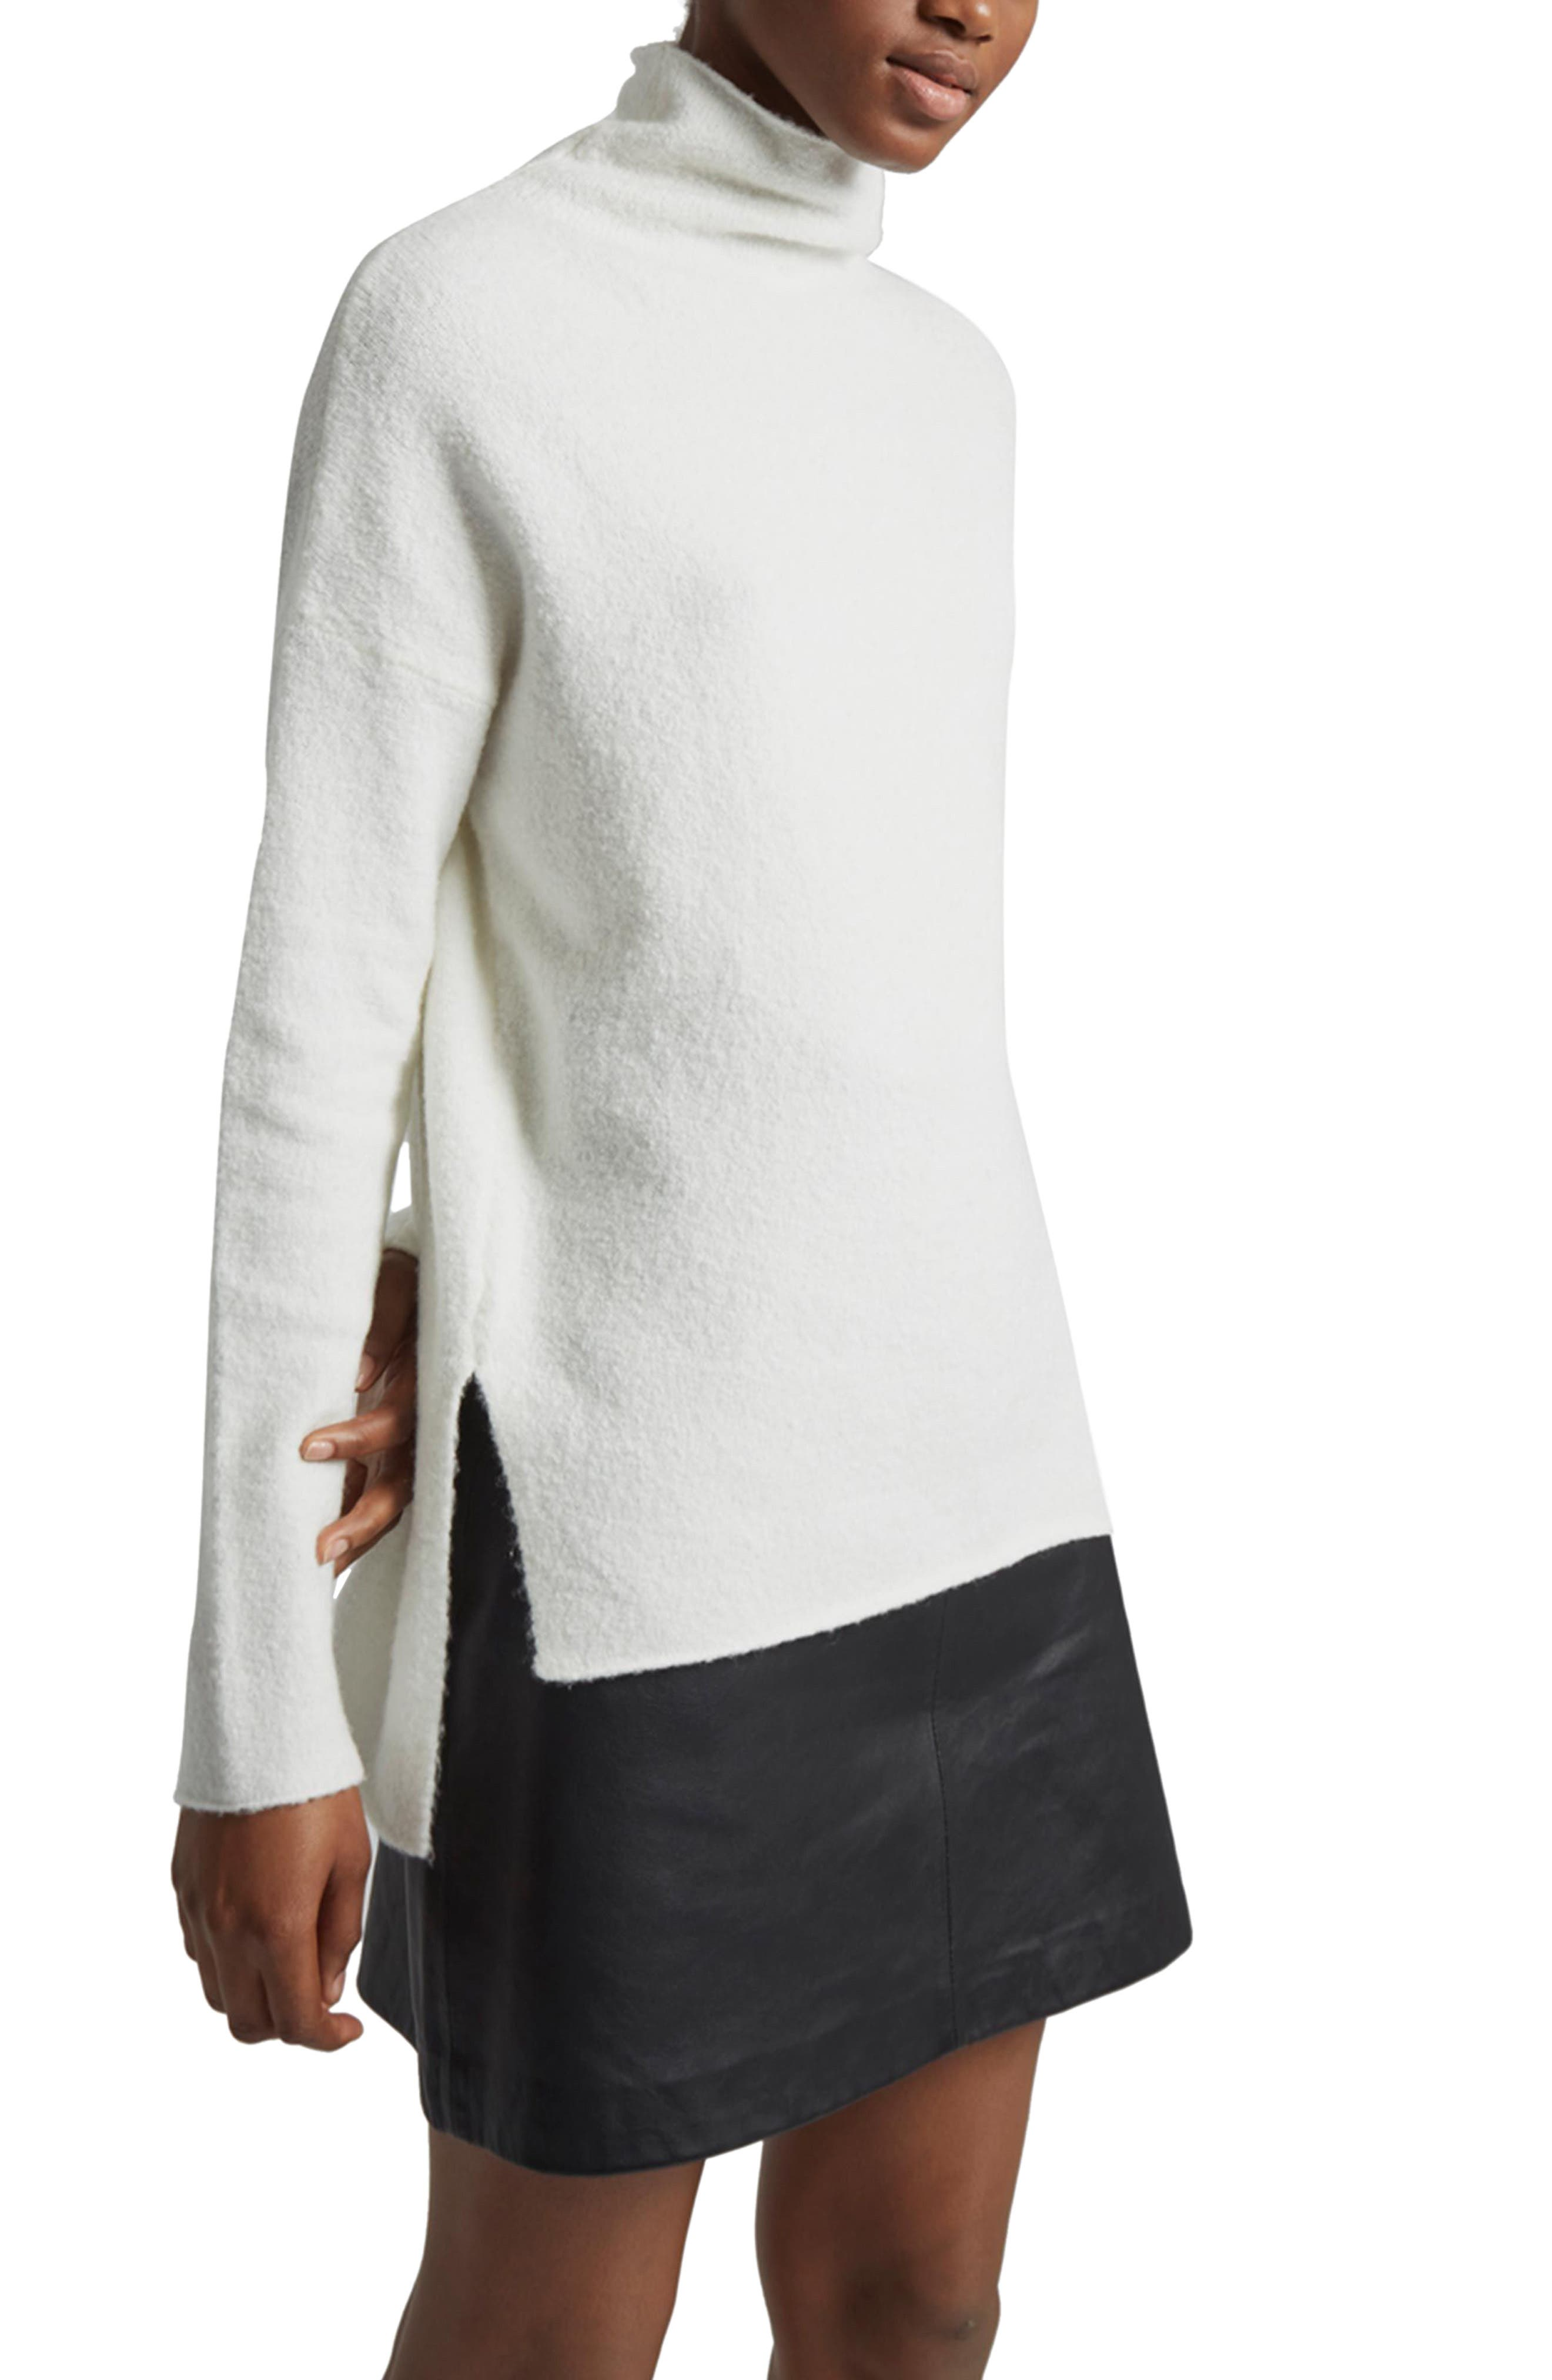 Aya Flossy Mock Neck Sweater,                         Main,                         color, Winter White